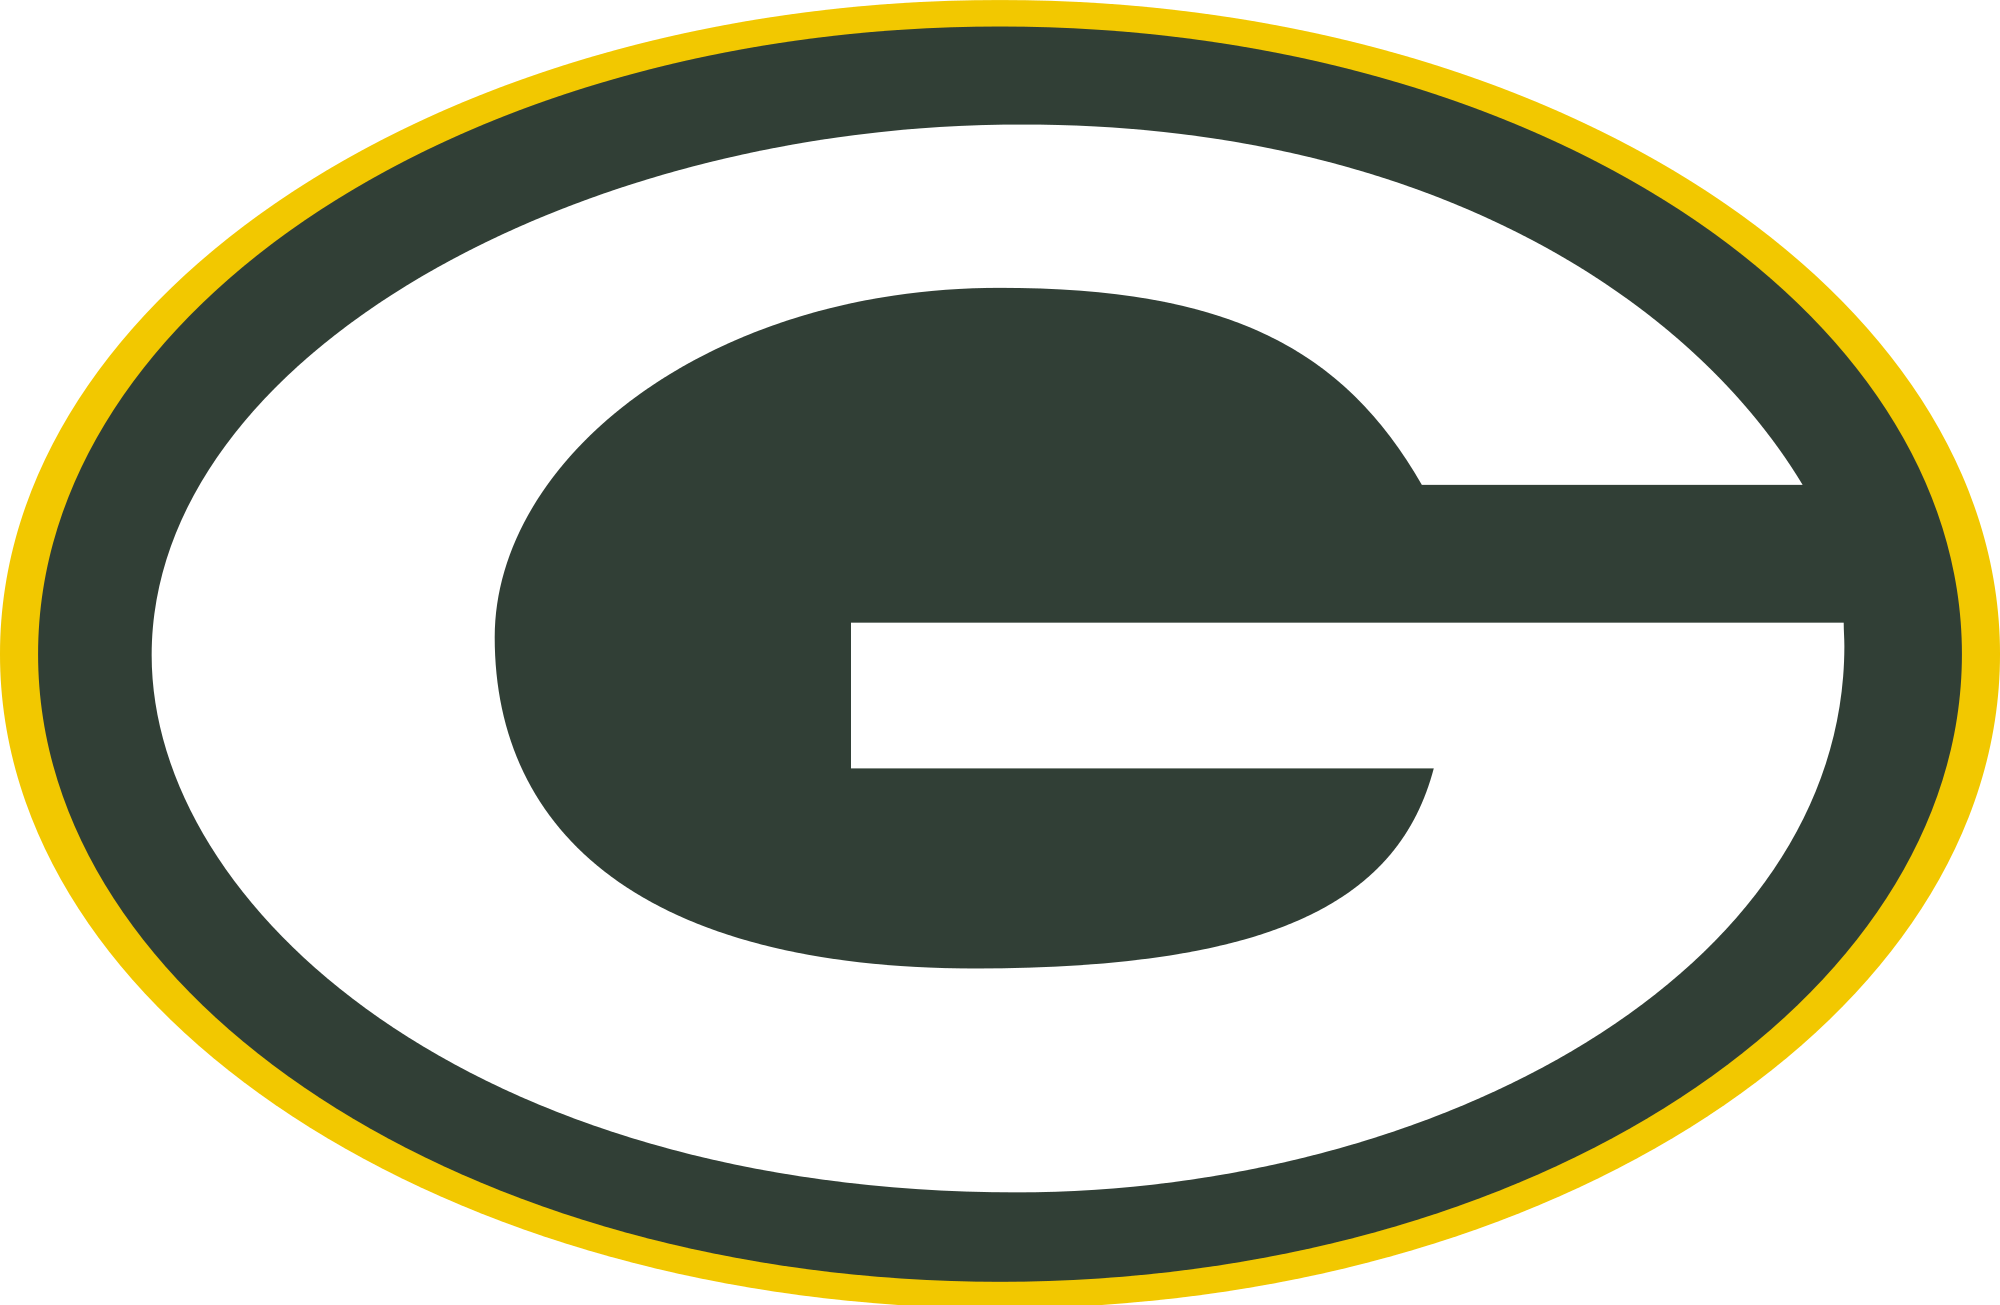 Green Bay Packers Symbol - ClipArt Best